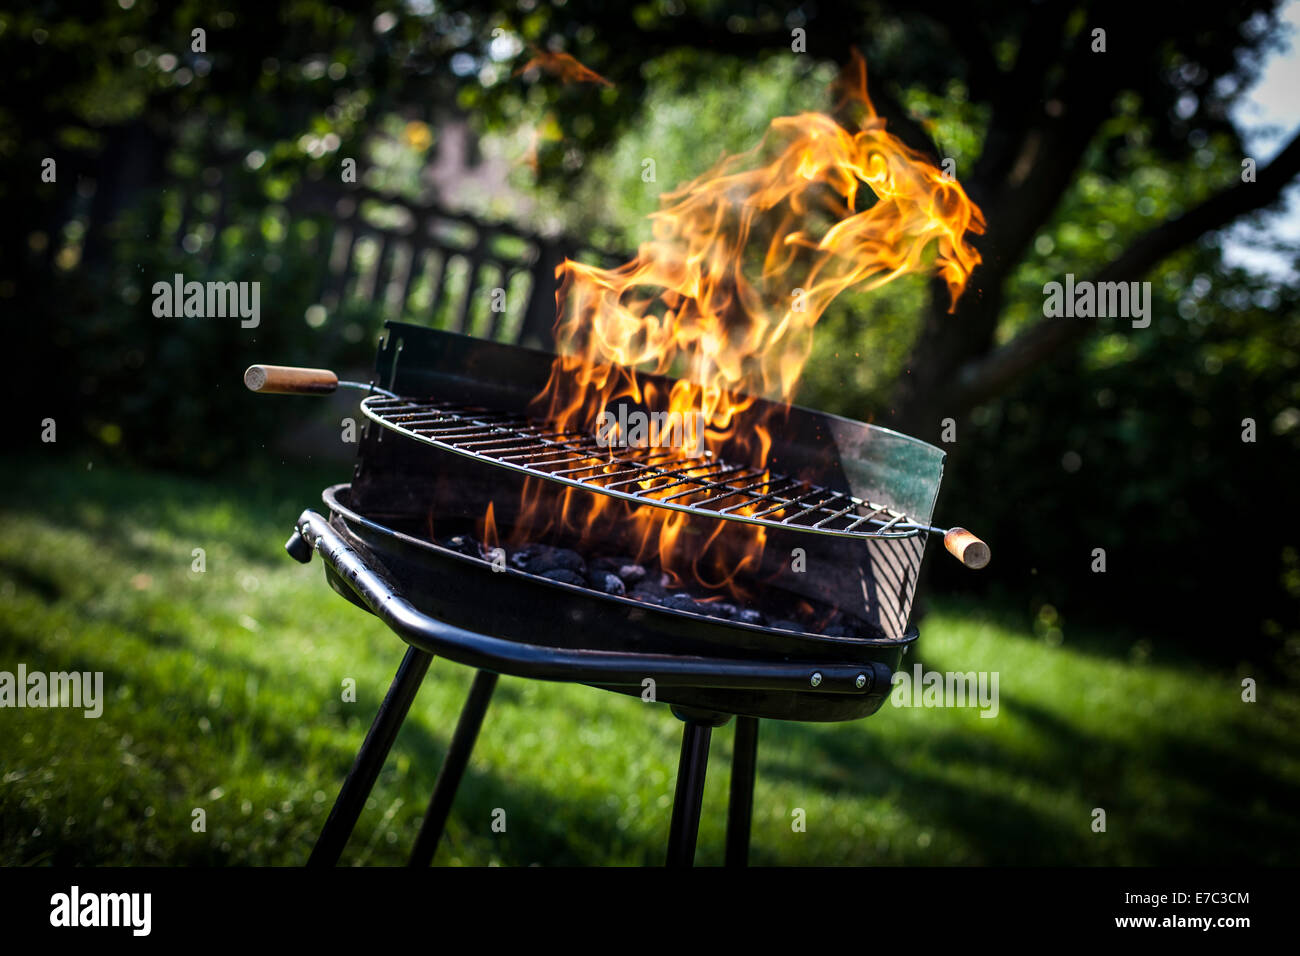 Super flammes sur le grill Photo Stock